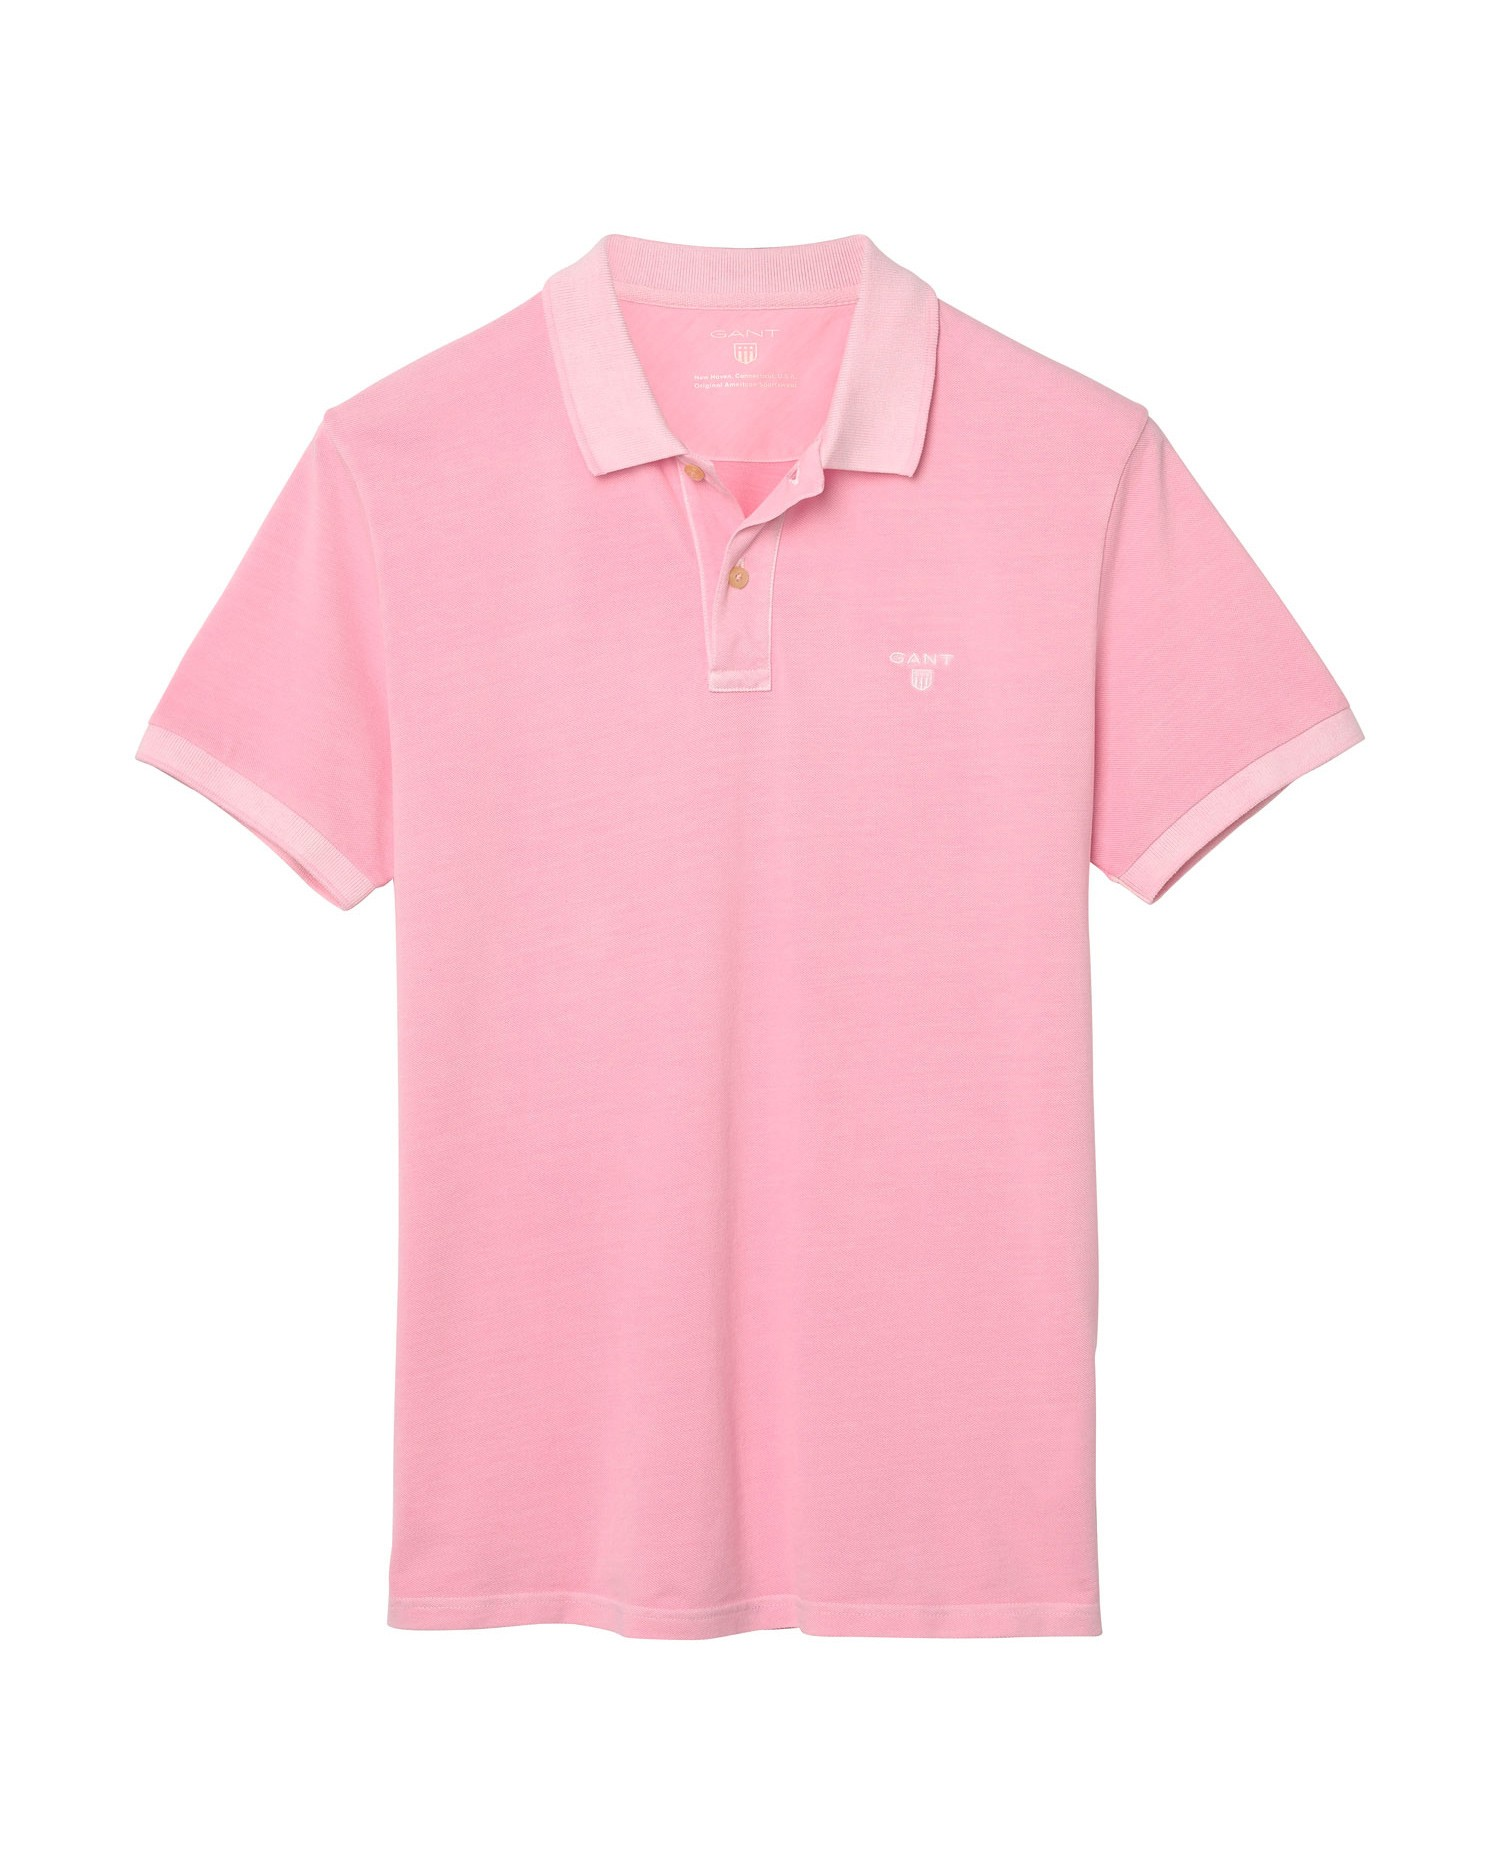 GANT Men's Vintage Regular Pique Polo - 262100